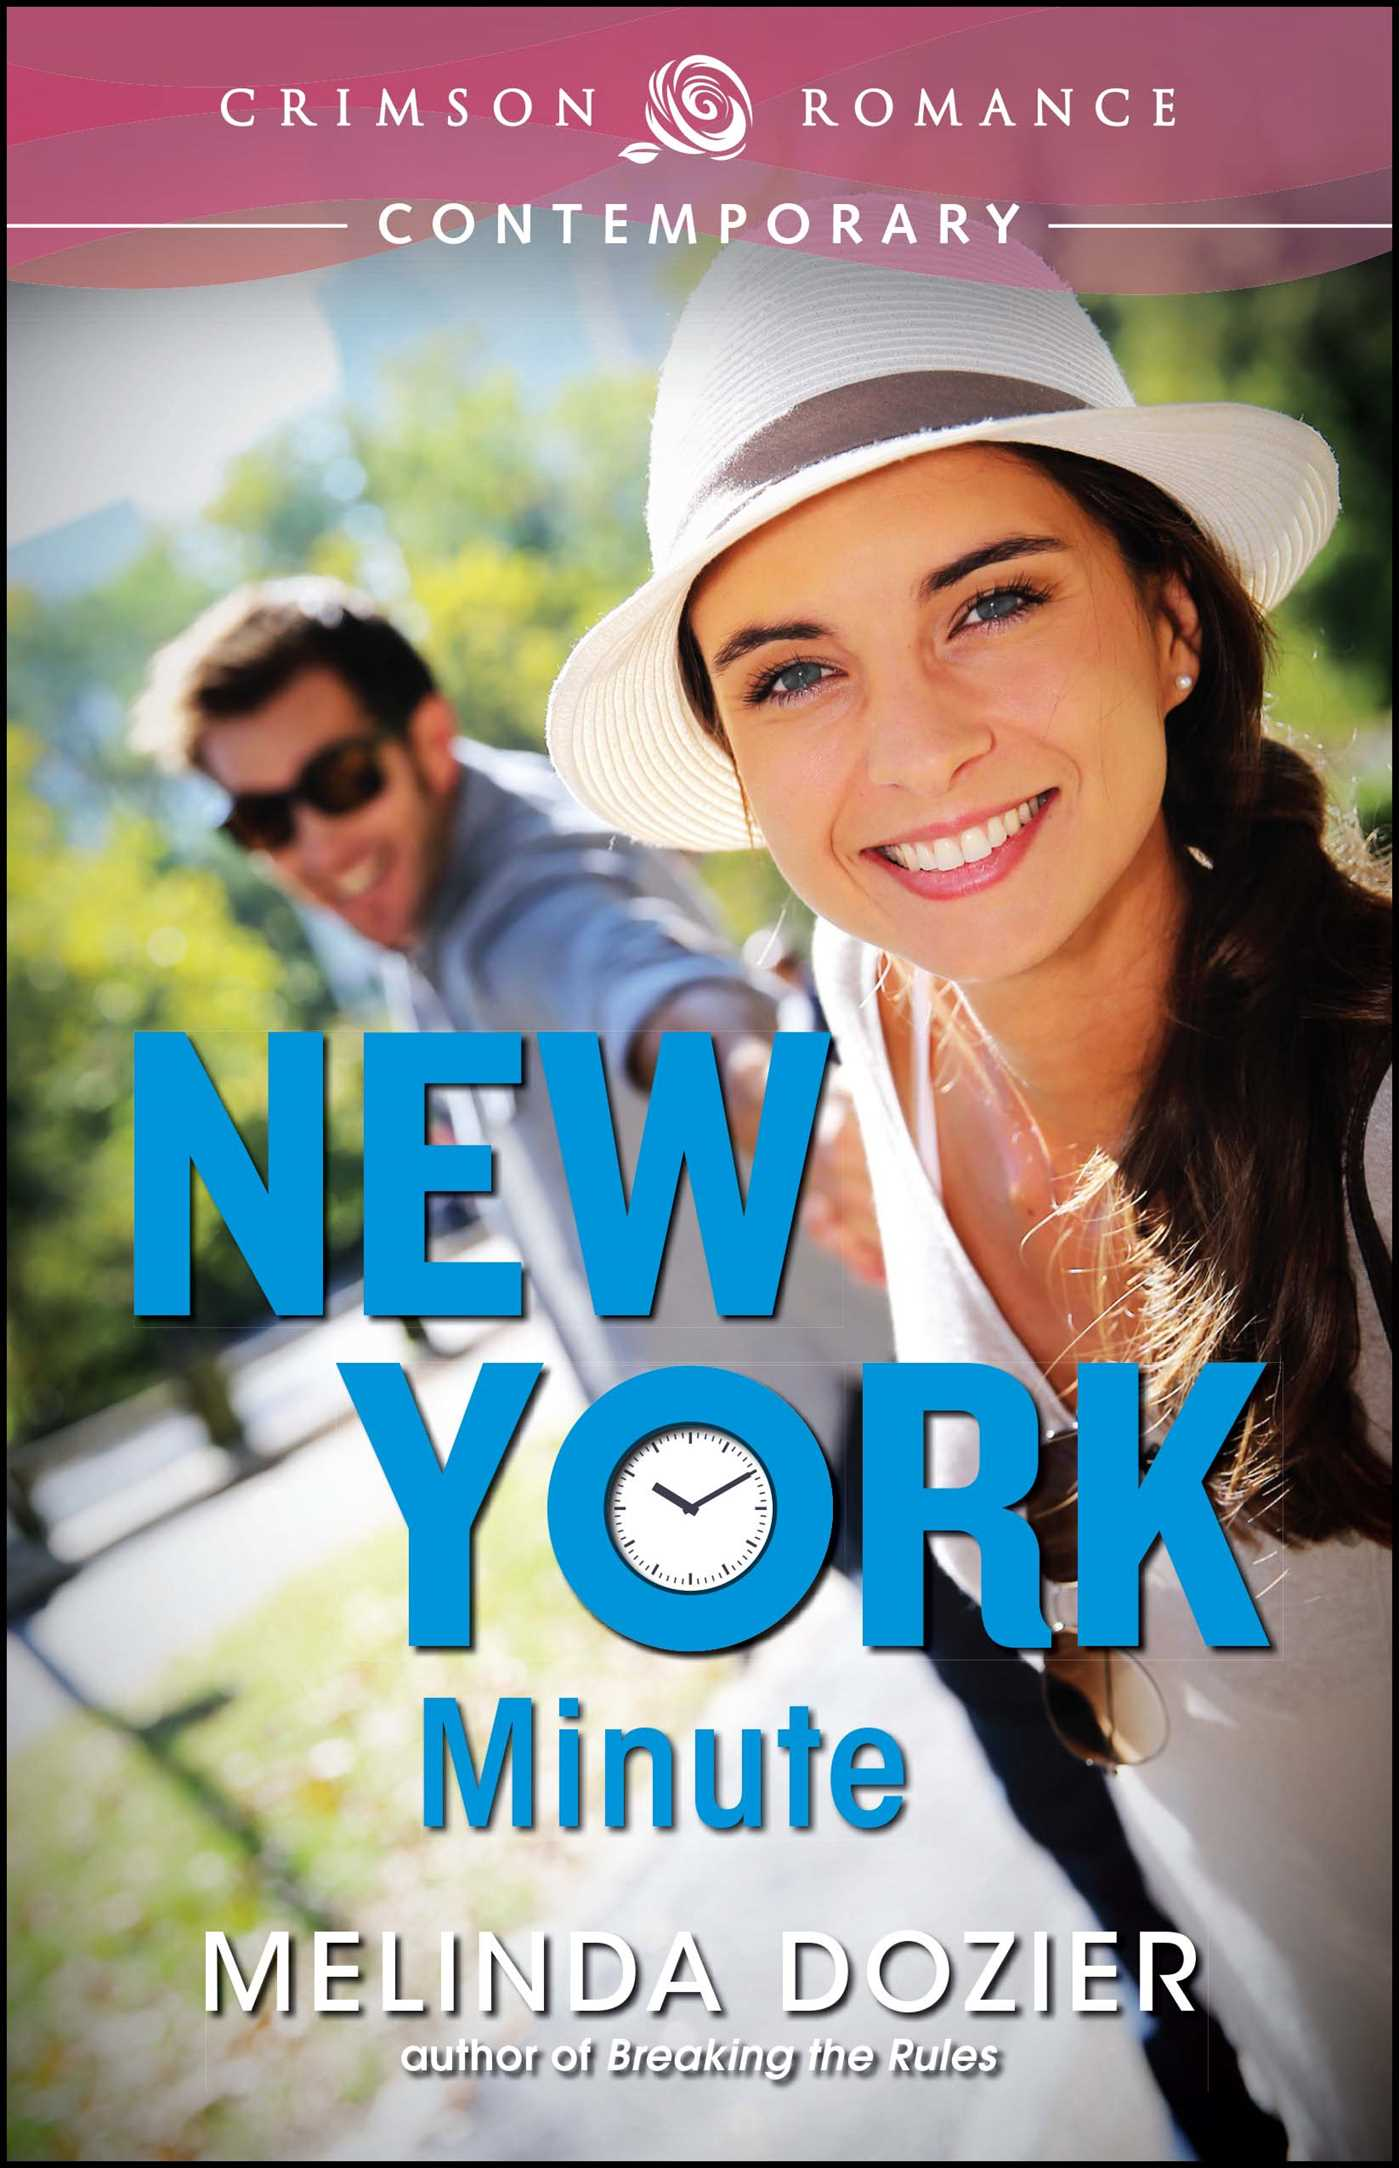 New york minute 9781440589119 hr